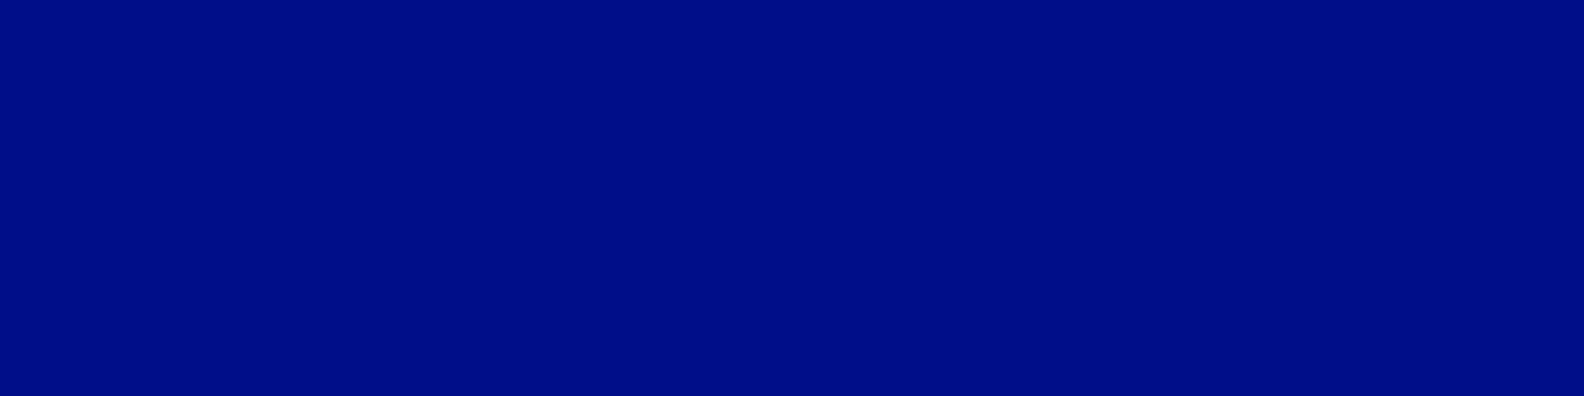 1584x396 Phthalo Blue Solid Color Background